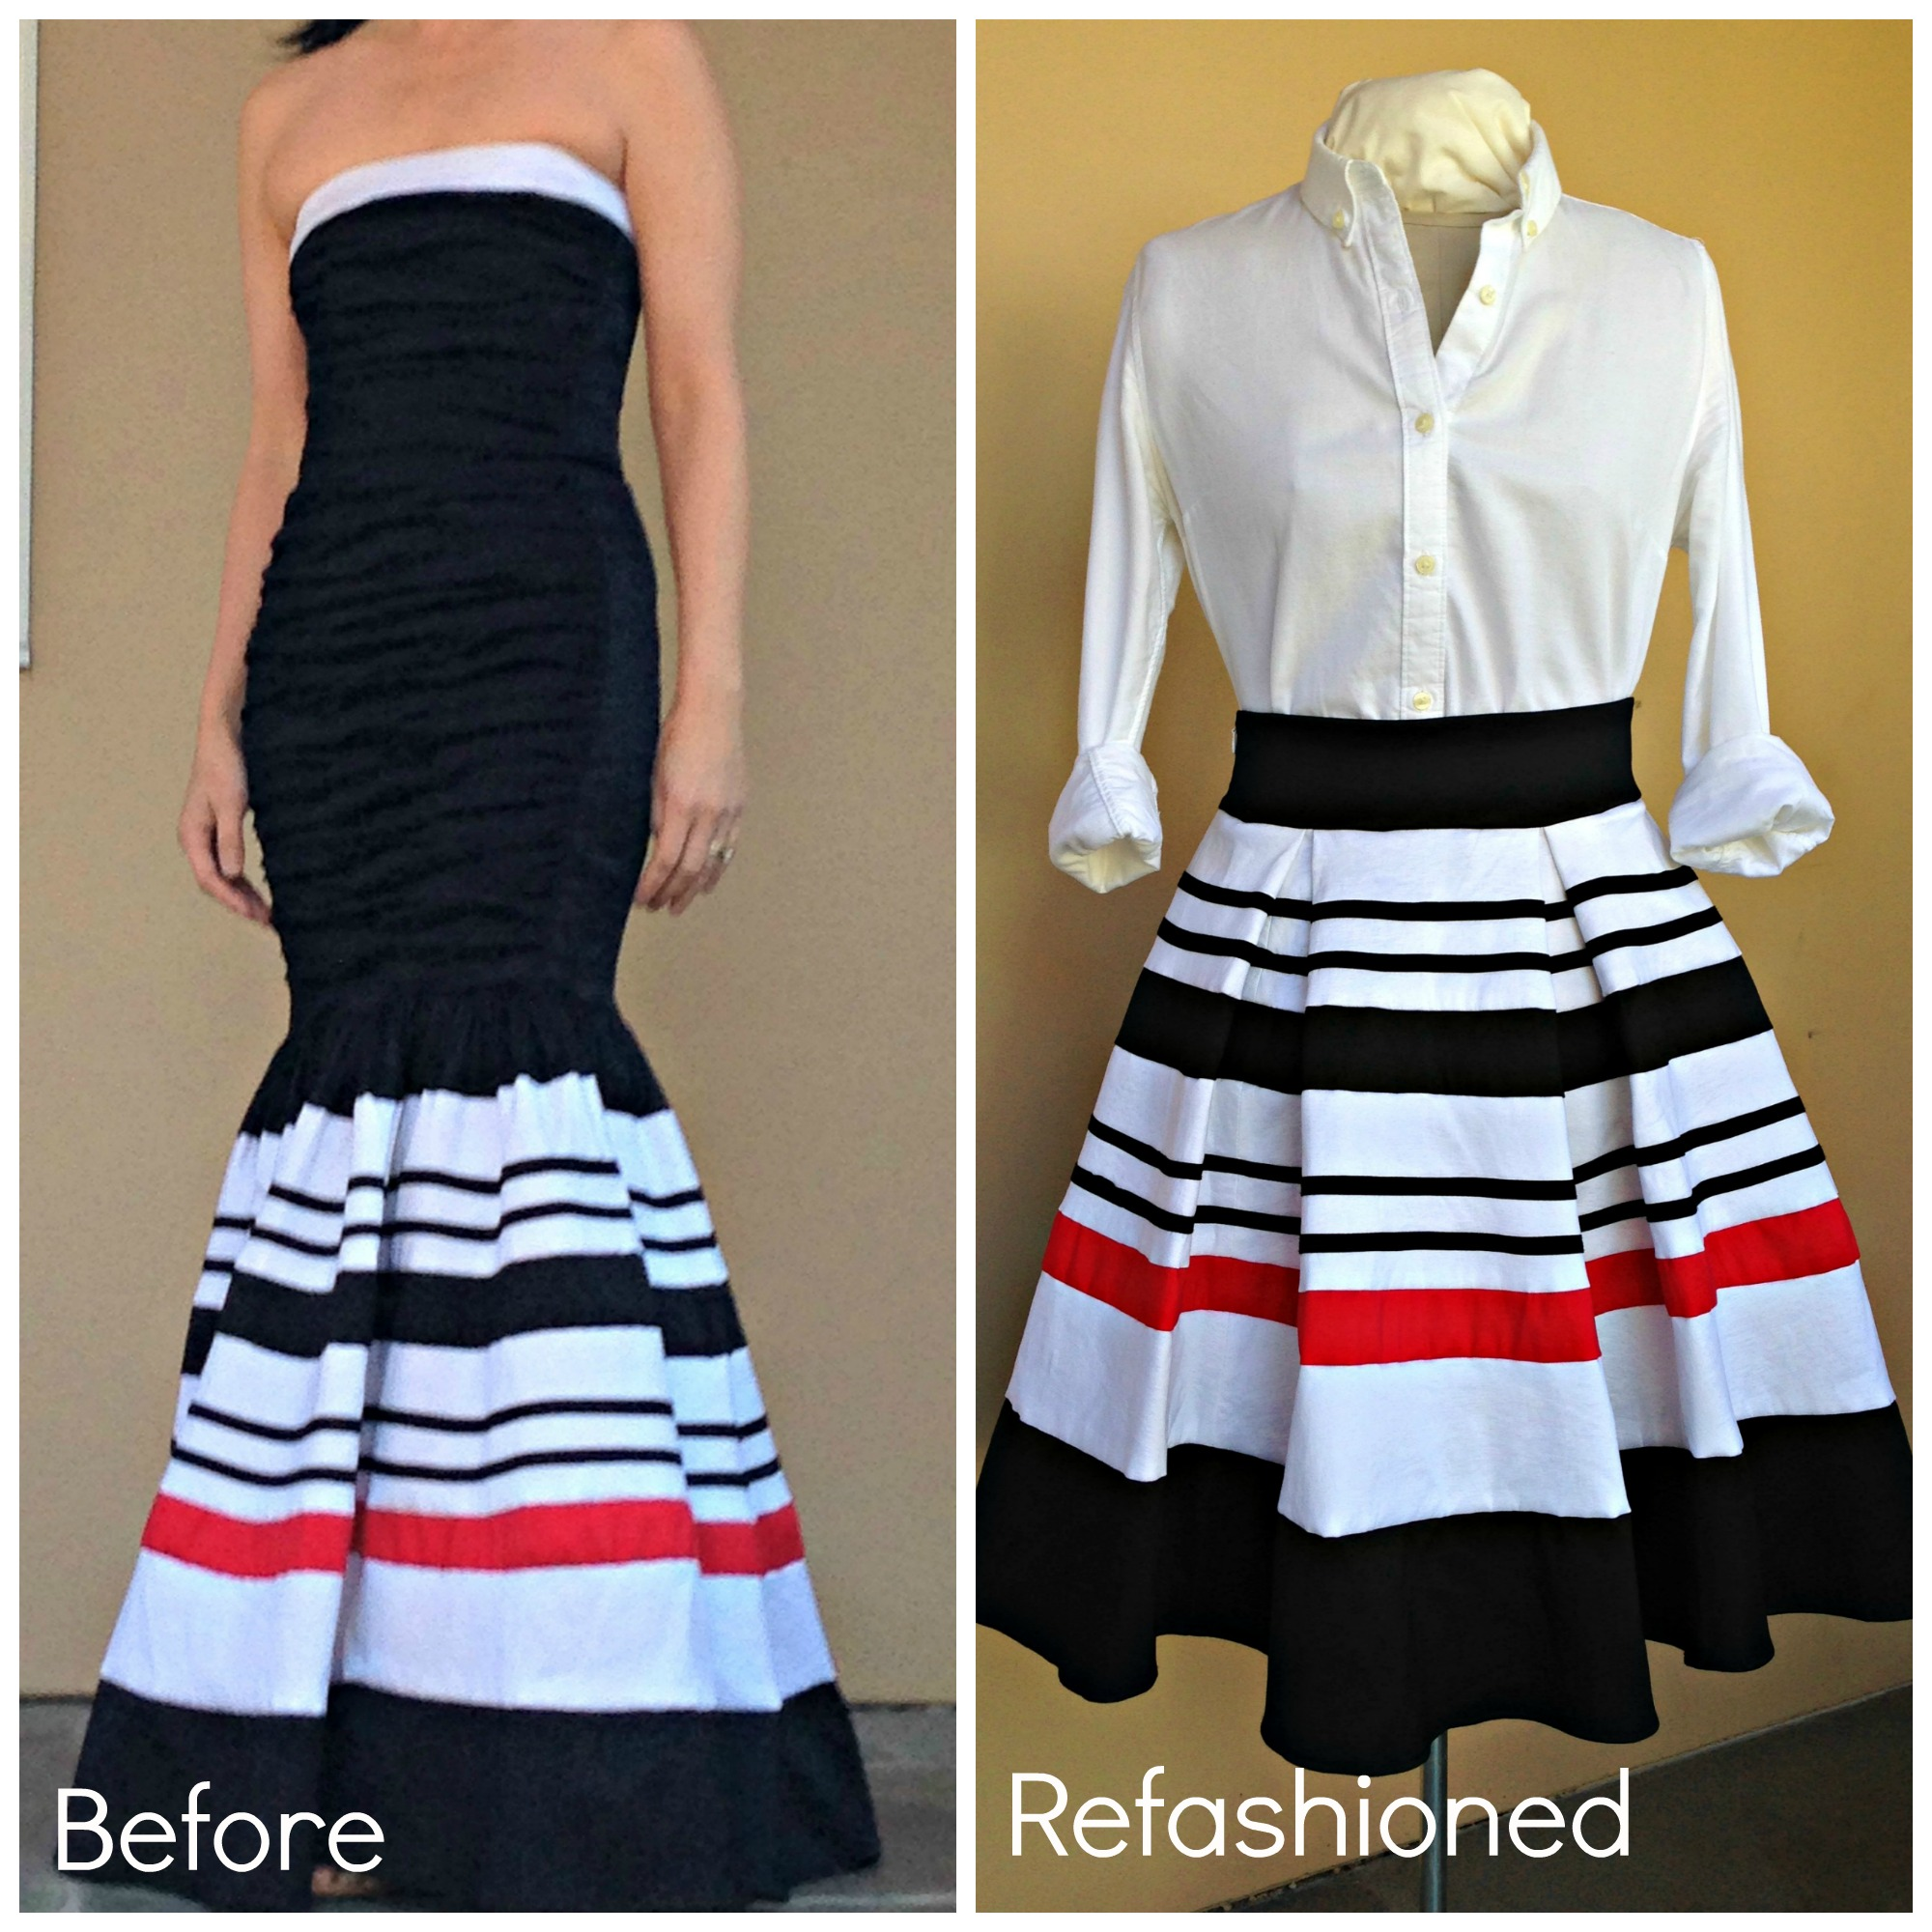 Refashioned Prom Dress into Pleated Skirt - Before and After